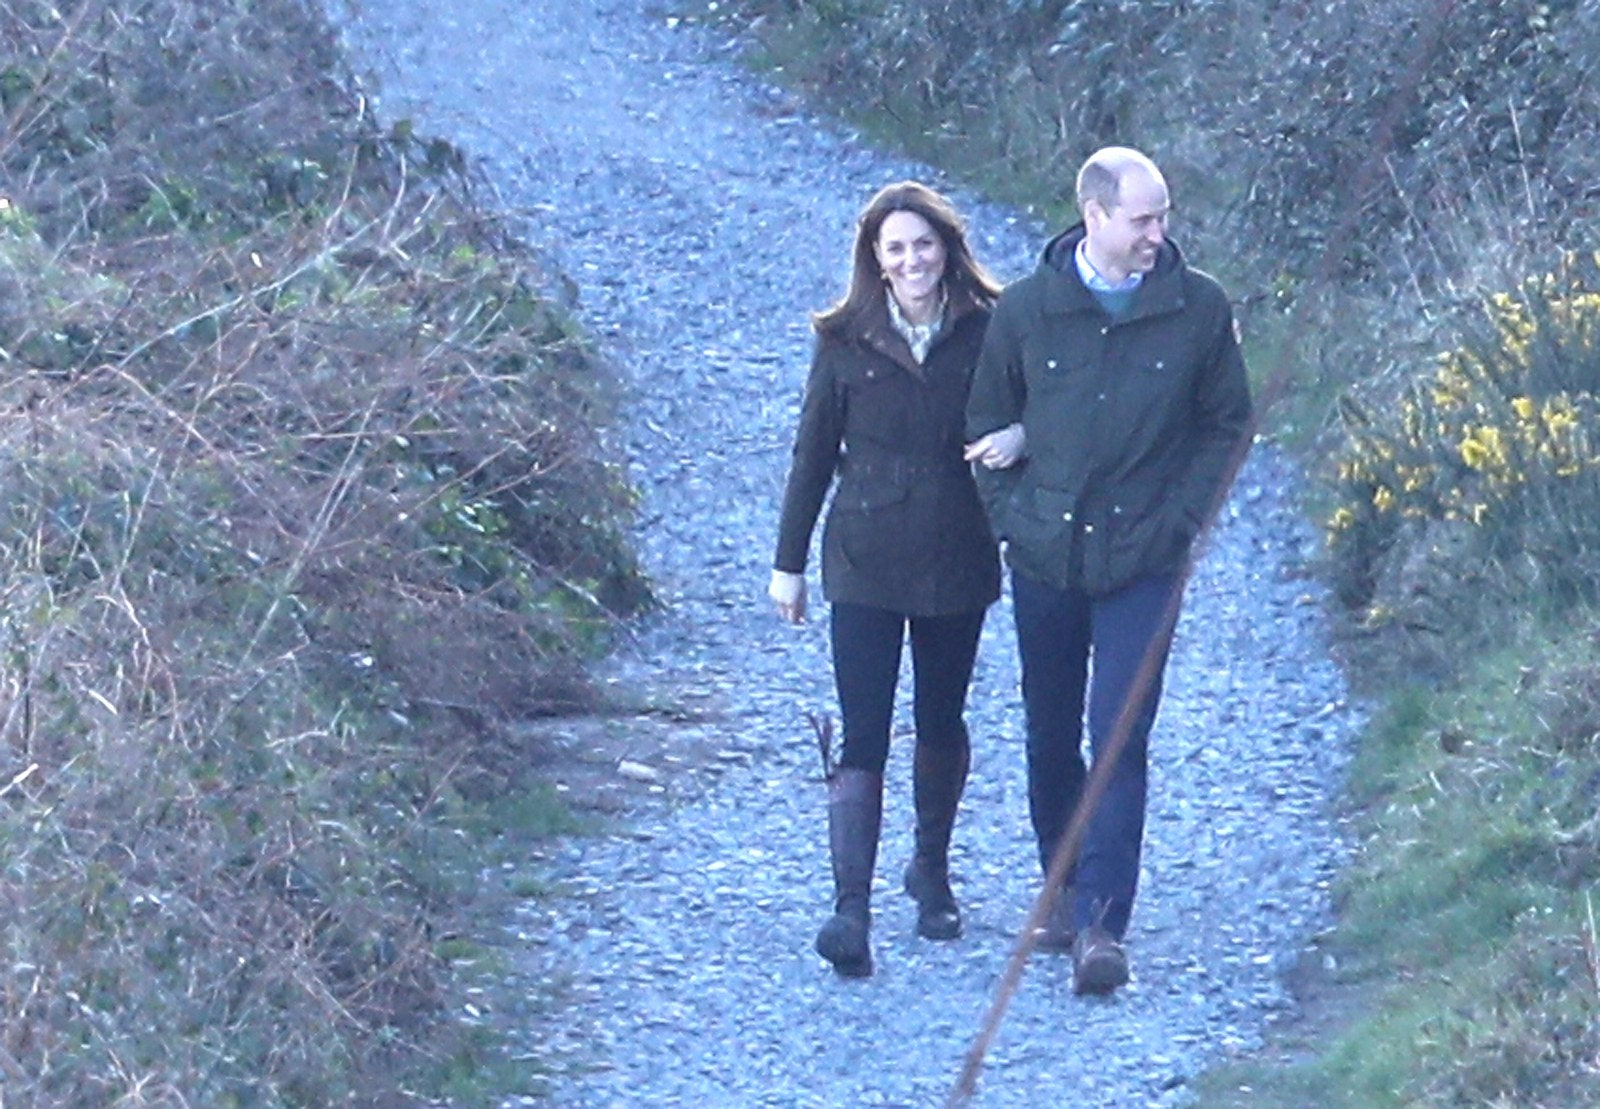 Prince William and Kate Middleton in Ireland 2020.